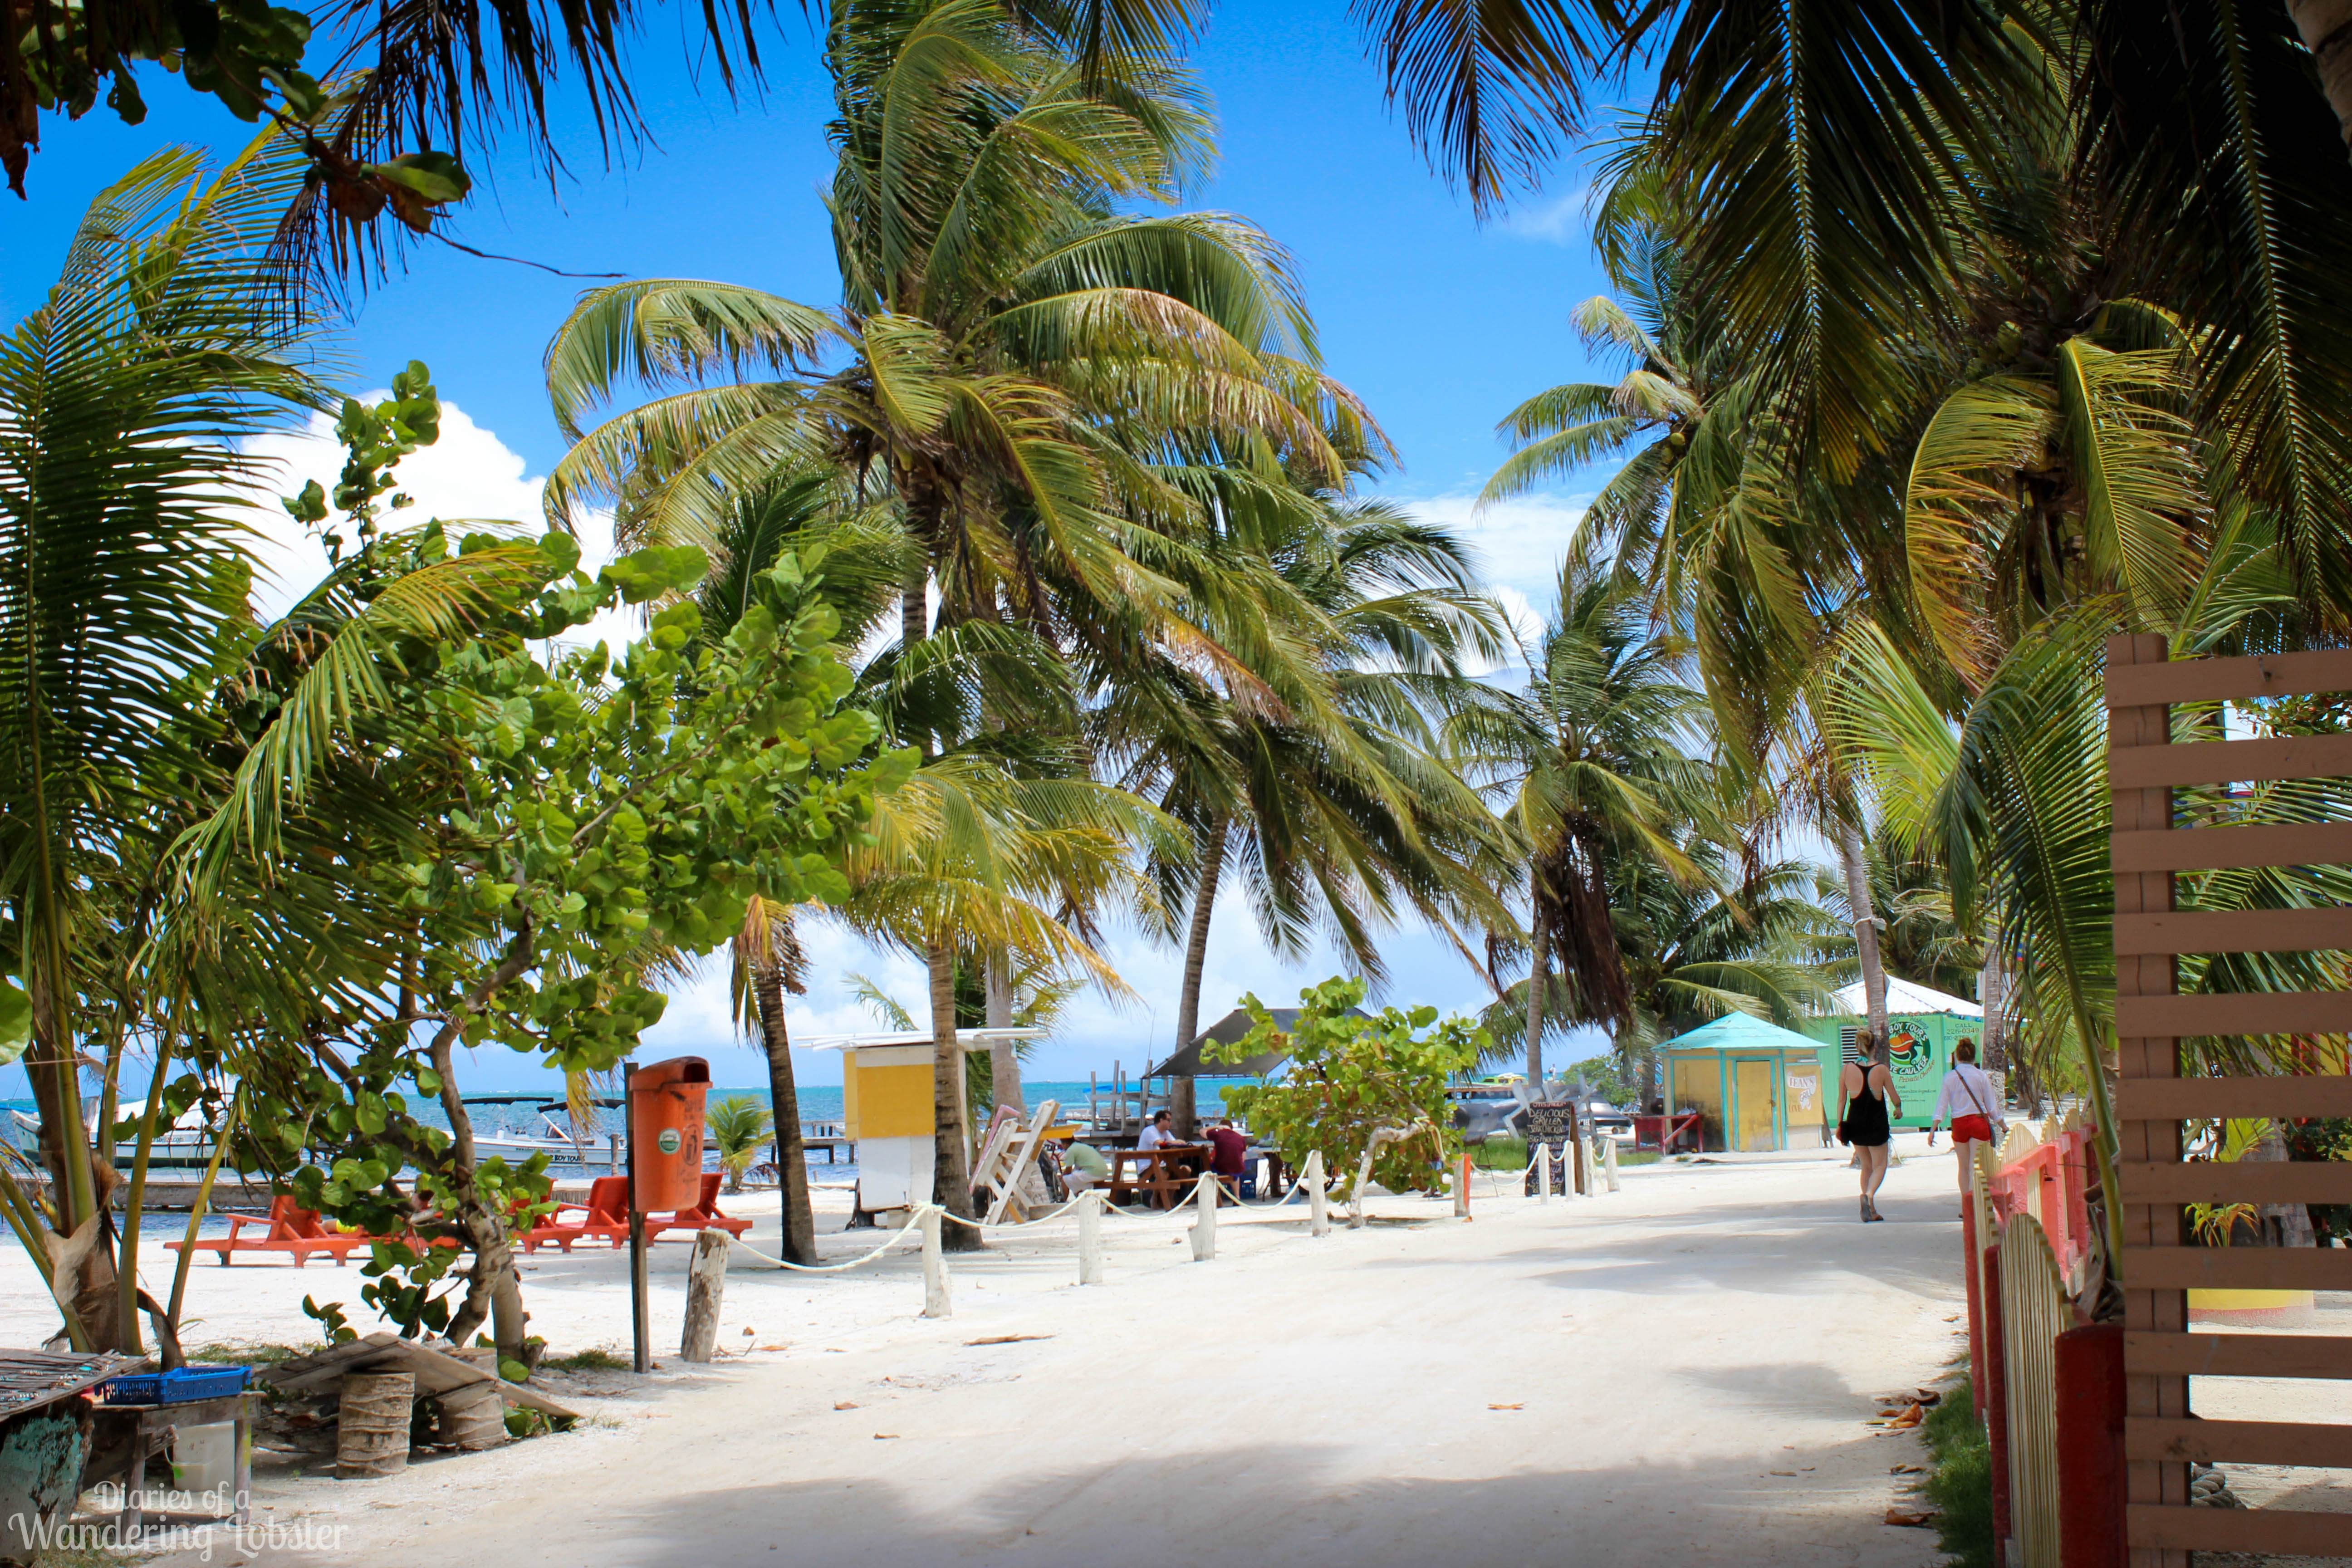 caye caulker map with Day 6 Island Hopping From San Pedro To Caye Caulker Belize on 184qV Belize Barrier Reef Belize furthermore DivesitesBIG furthermore 100021 additionally Caye Caulker Belize further South Water Caye.